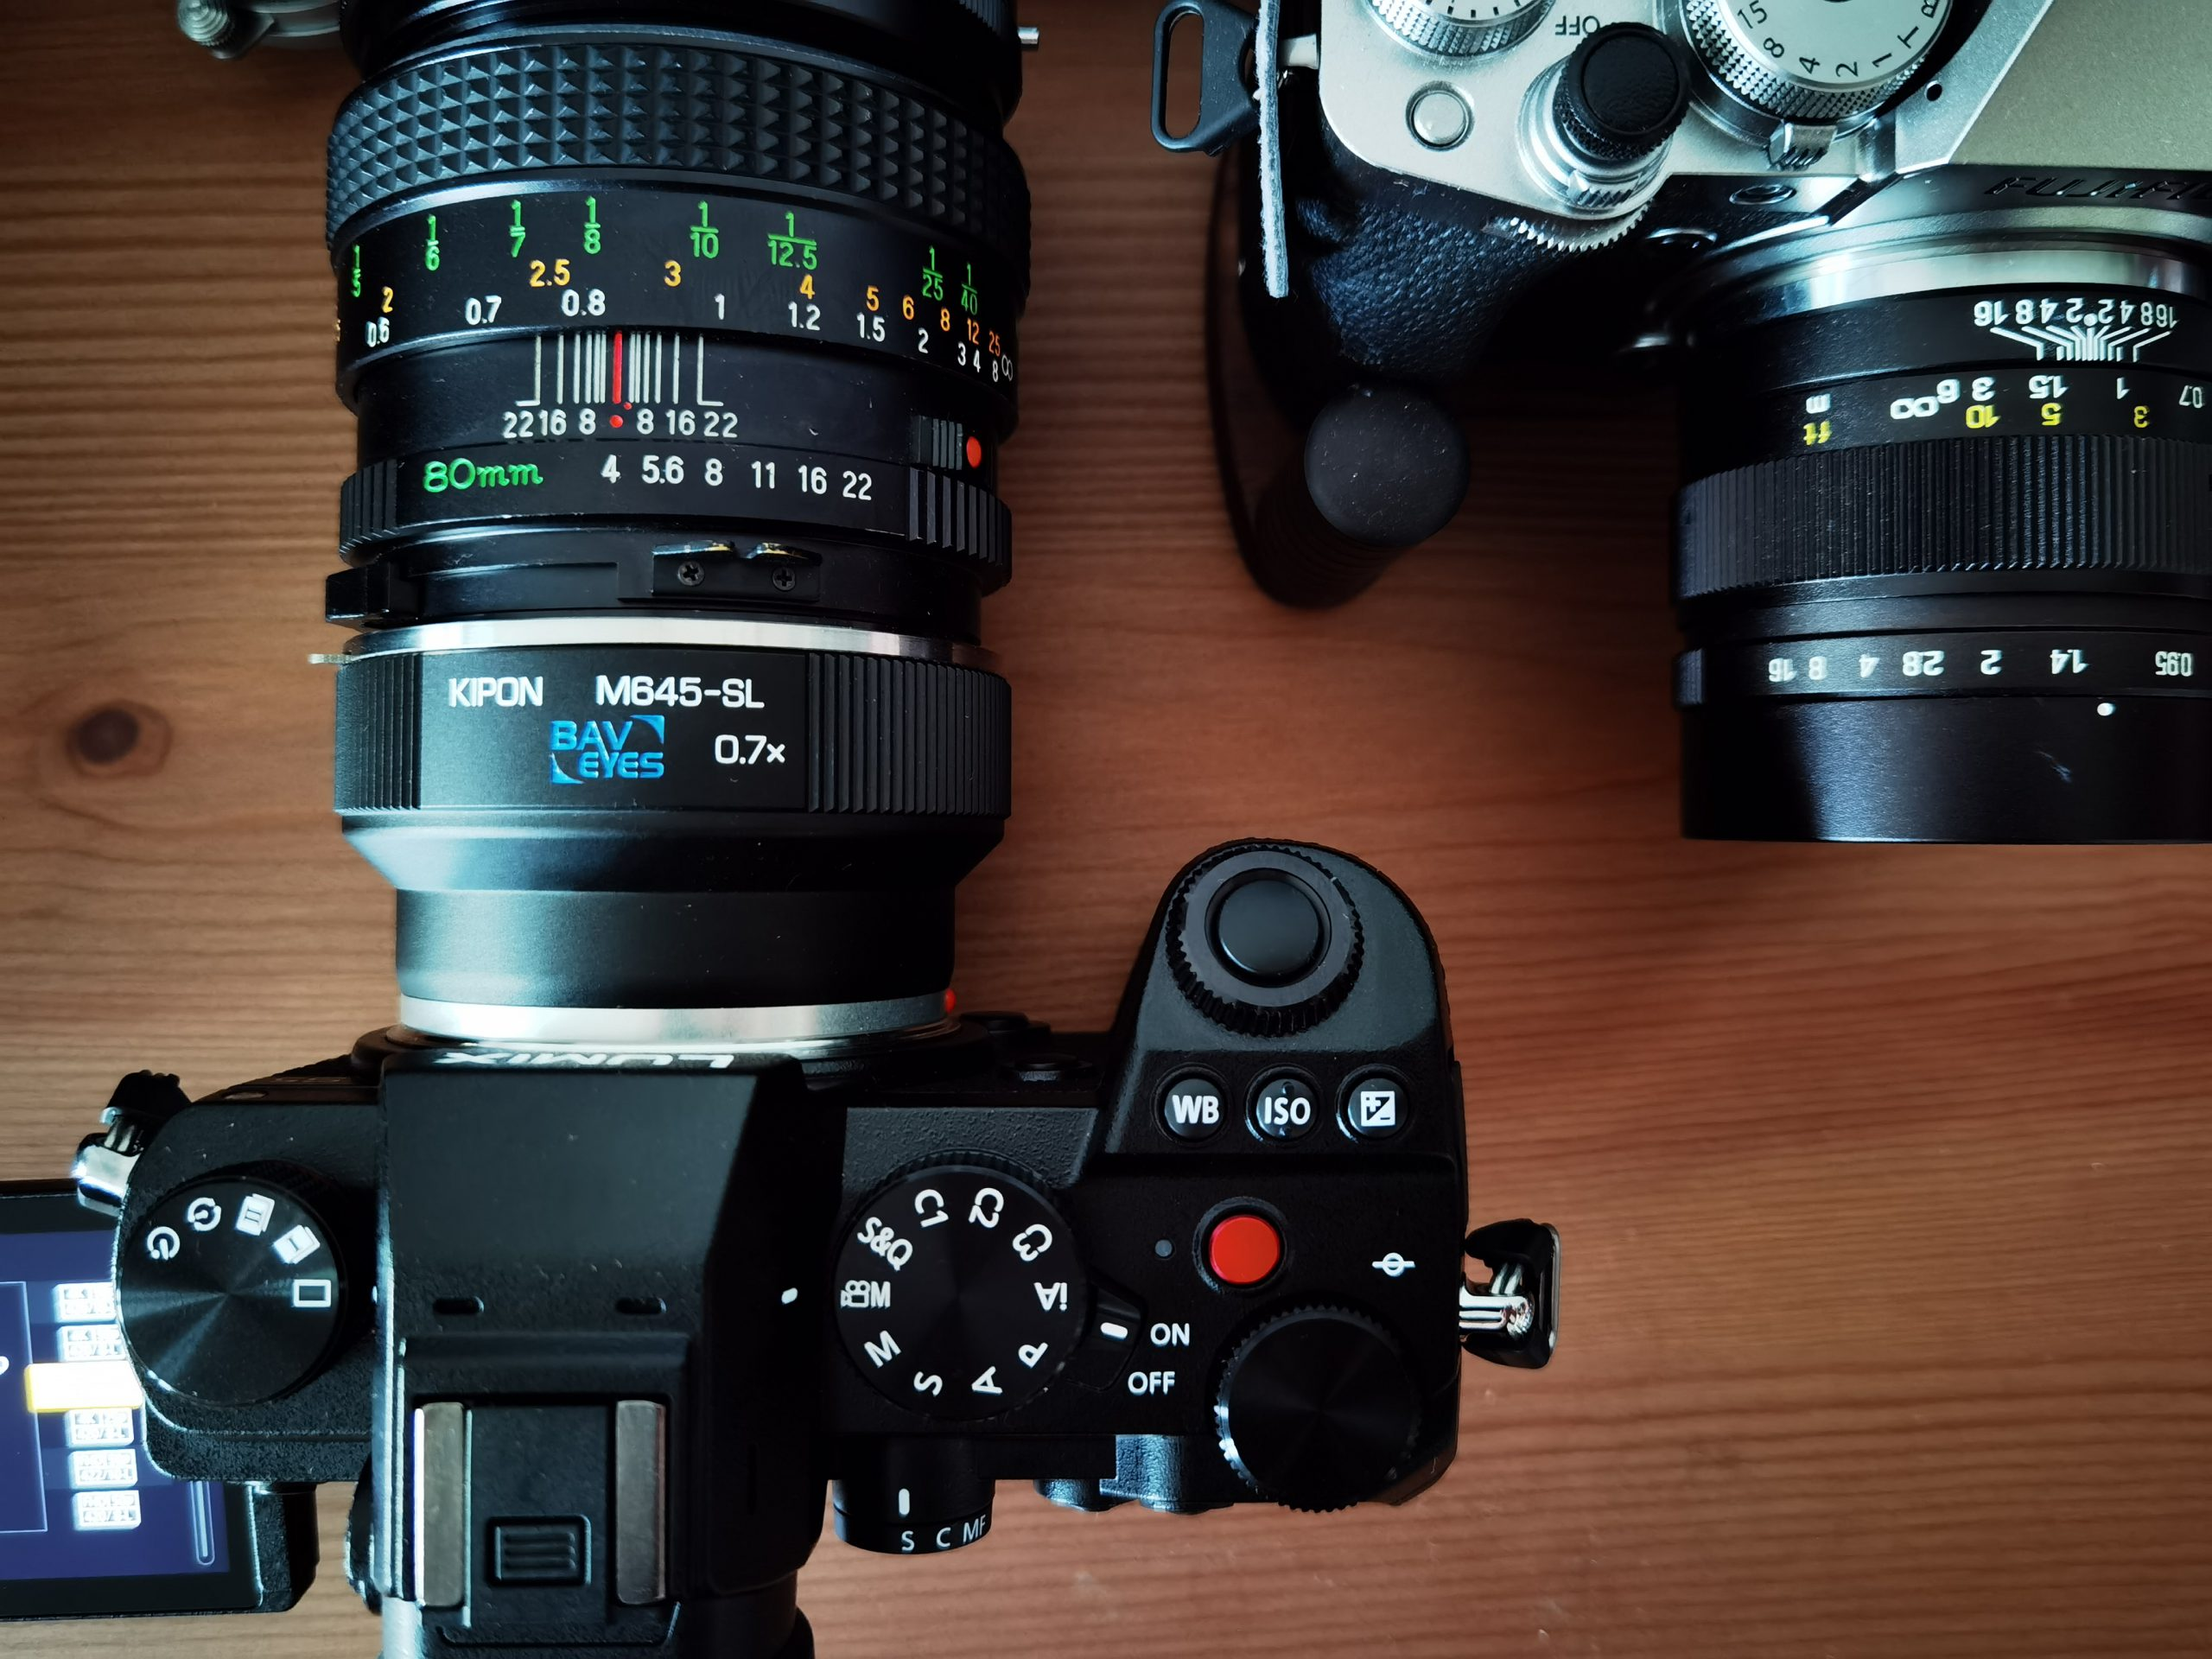 Hands On With The Panasonic S5 10bit 1999 Is This The A7s Iii For The Masses Eoshd Com Filmmaking Gear And Camera Reviews